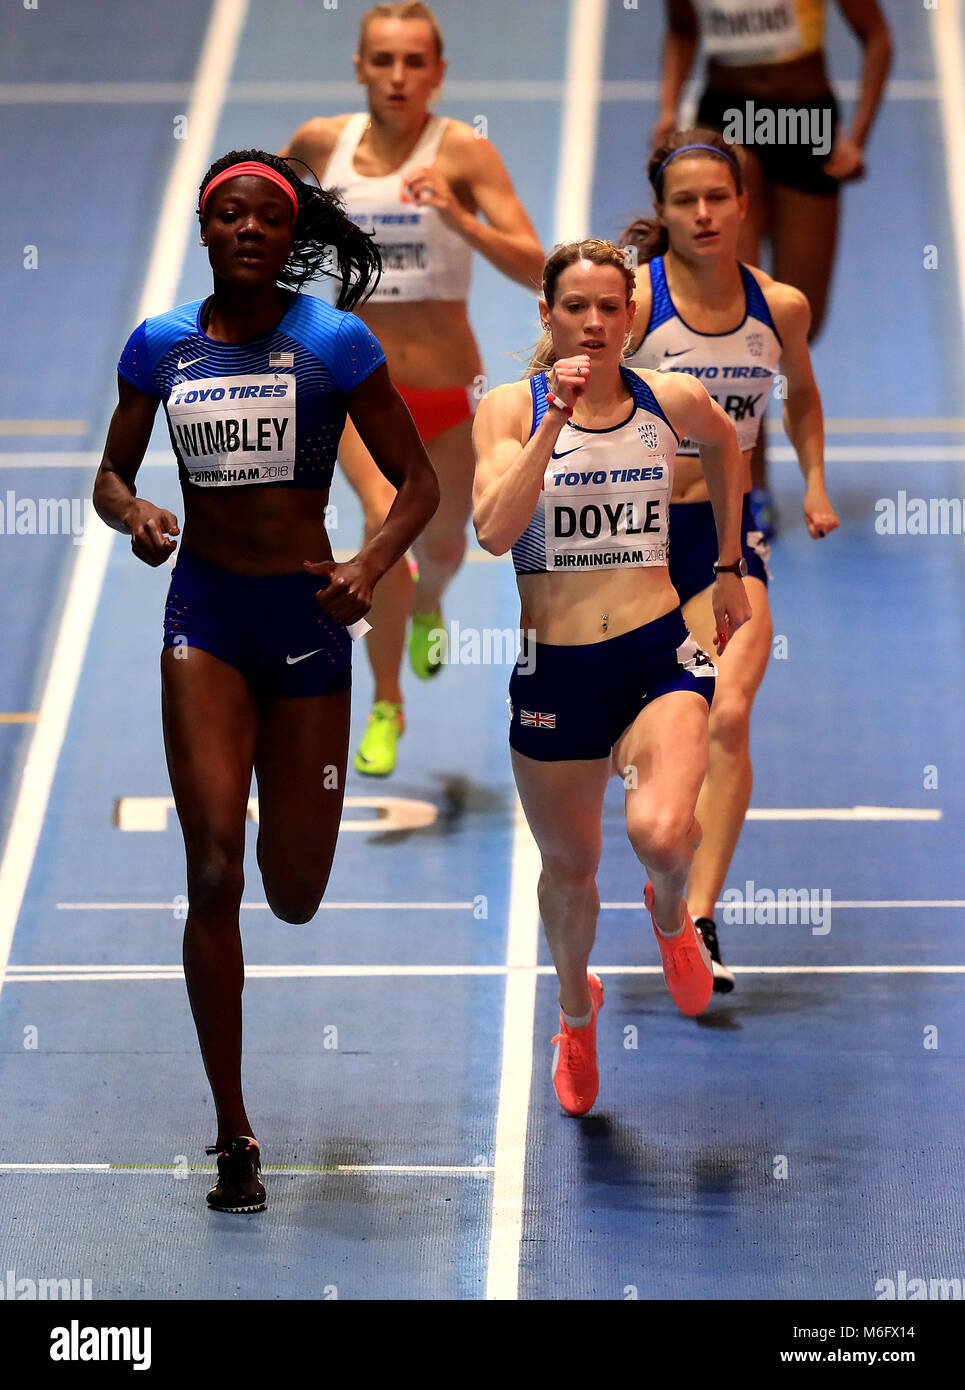 Great Britain's Eilidh Doyle (centre) on the way to winning bronze in the Women's 400m Final and Zoey Clark - Stock Image